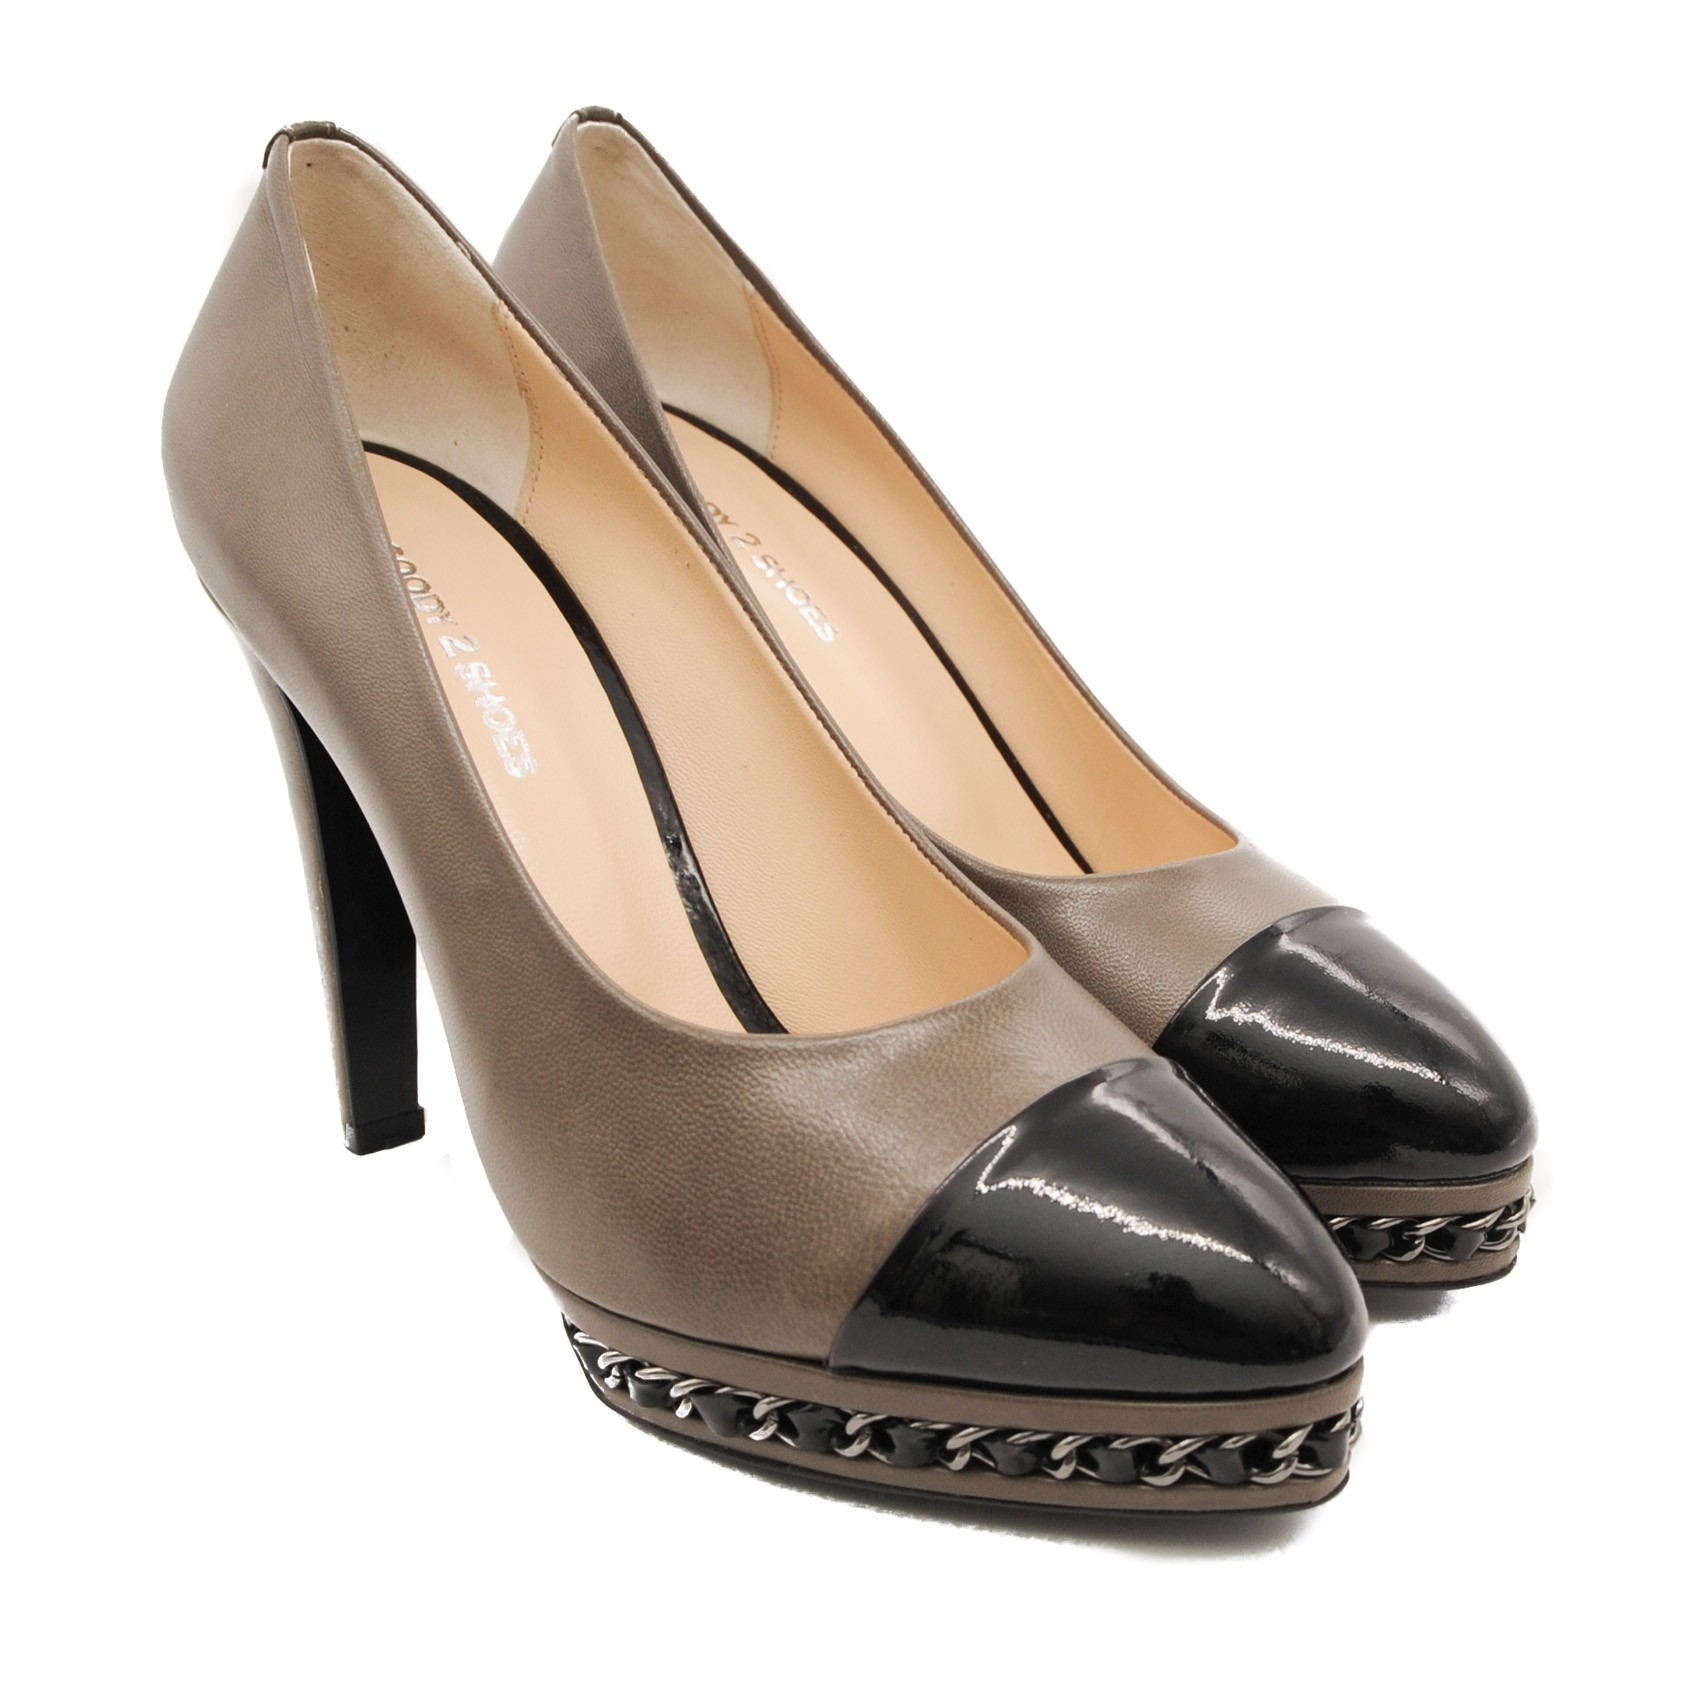 Two Tone High Heeled Shoes with Leather Inner and Patterned Decorative Chained Sole